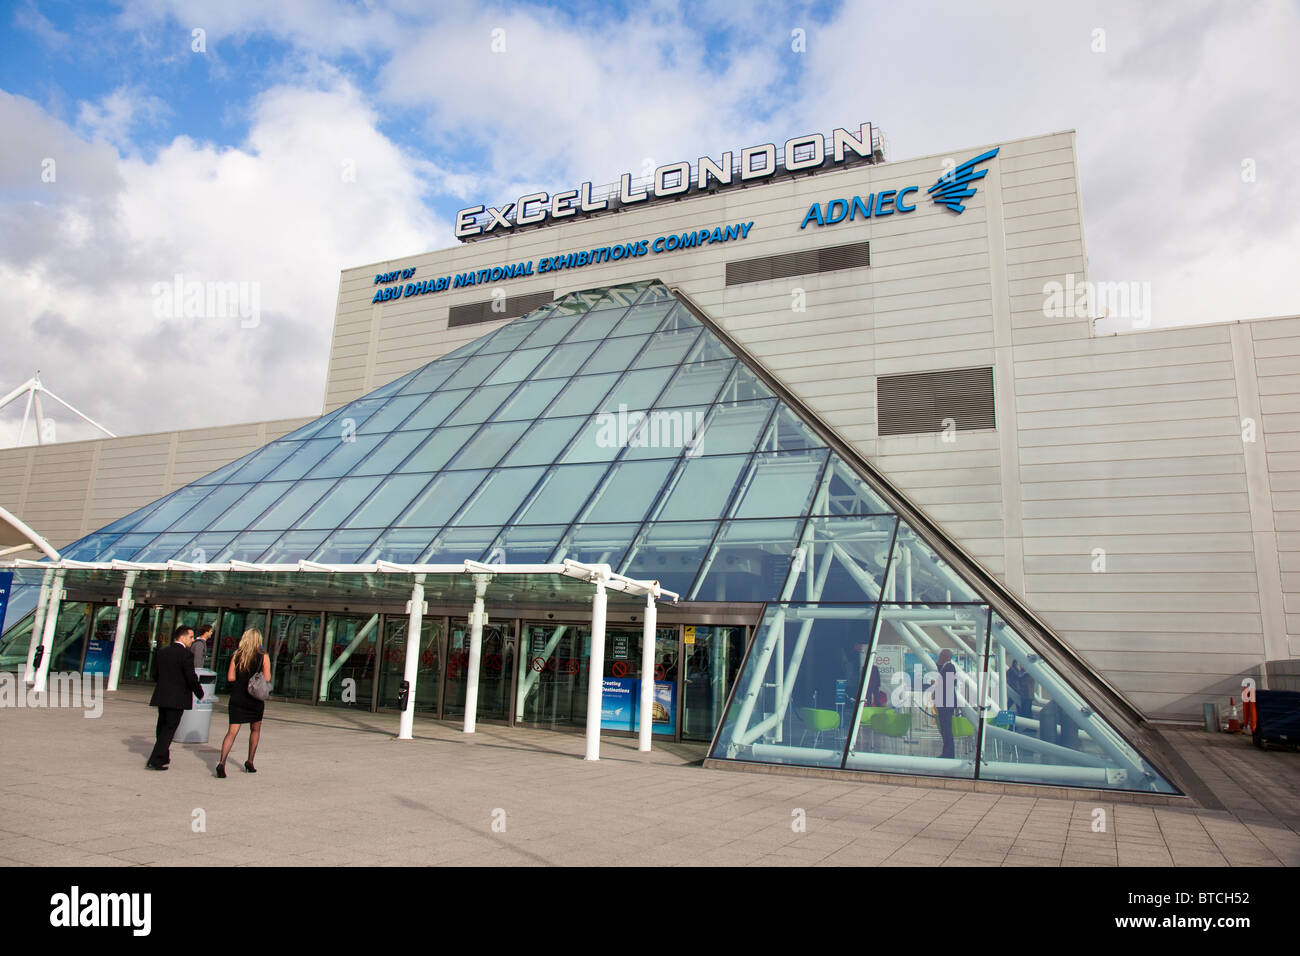 ExCel Exhibition Centre (part of ADNEC Abu Dahbi National Exhibition Company), Royal Victoria Dock, London, UK - Stock Image